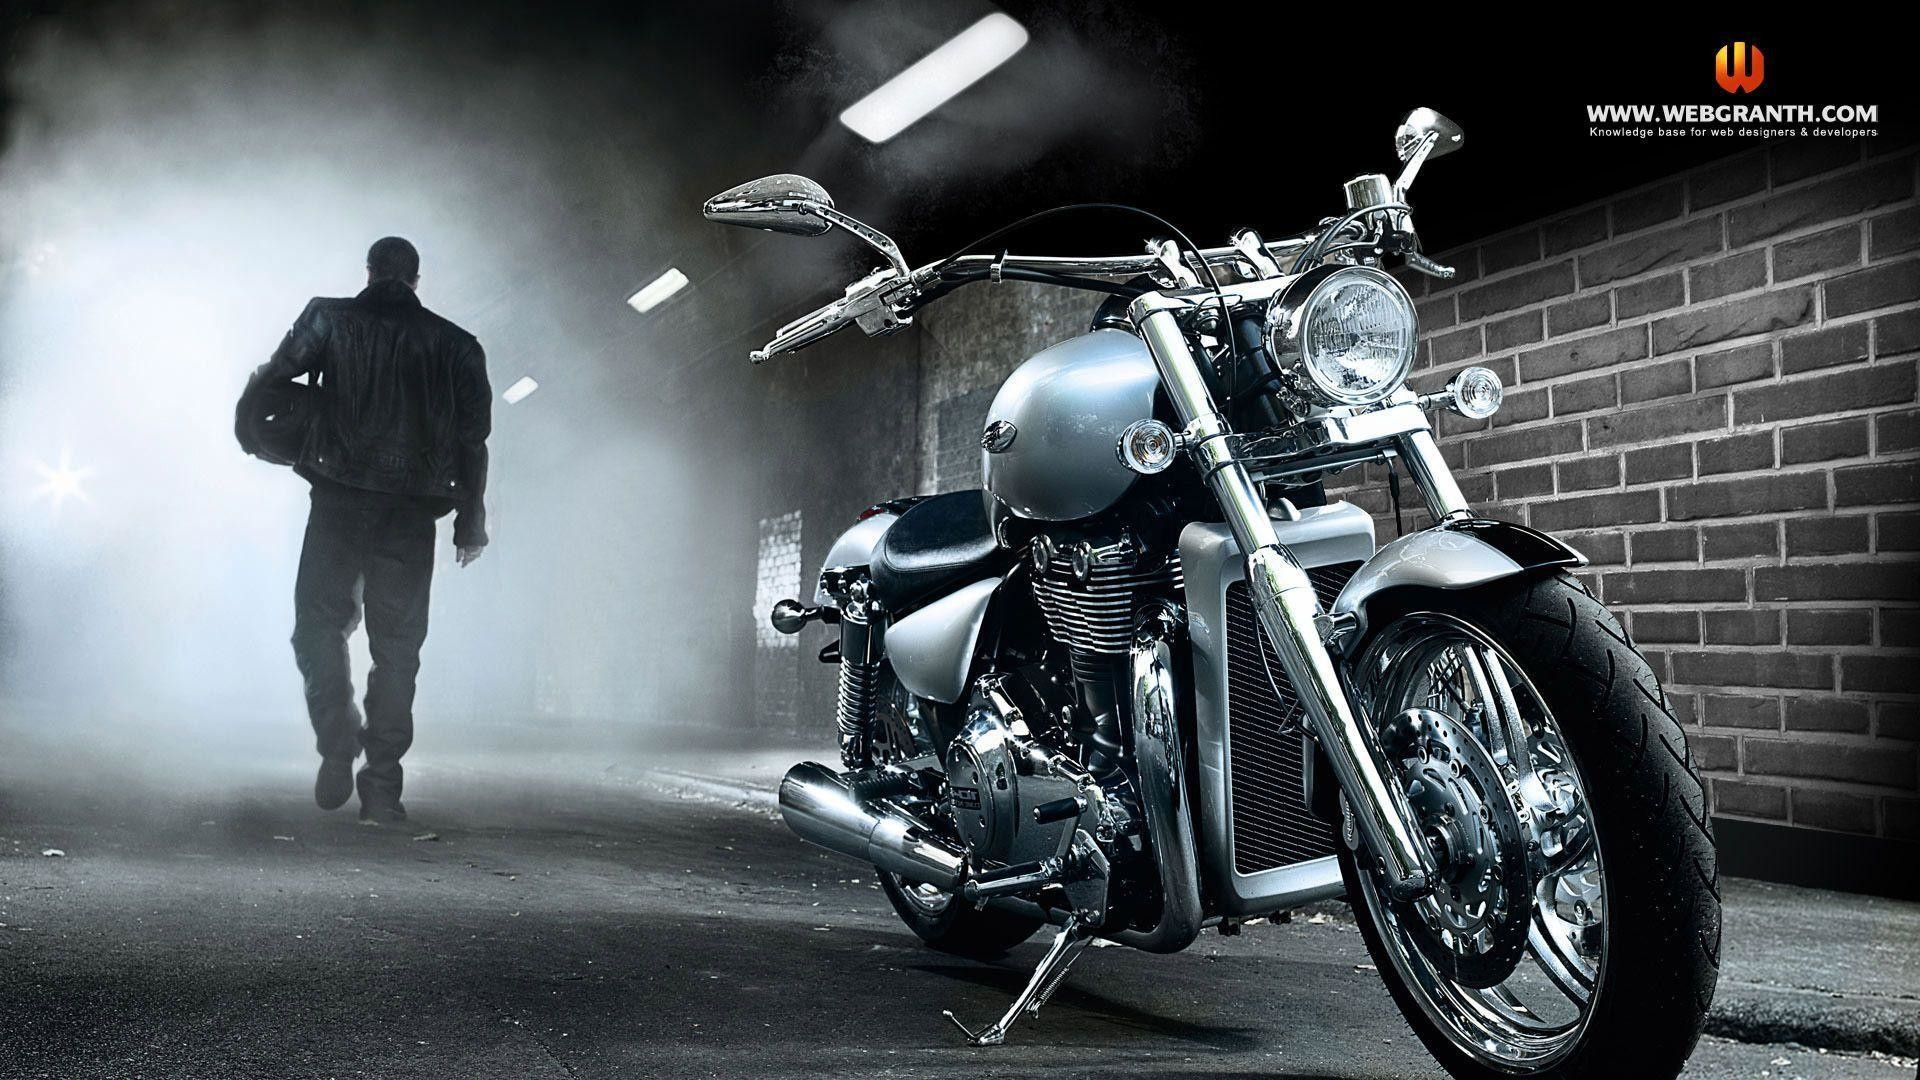 Res: 1920x1080, Download Free Biker With Motorcycle Wallpaper | HD Wallpapers .